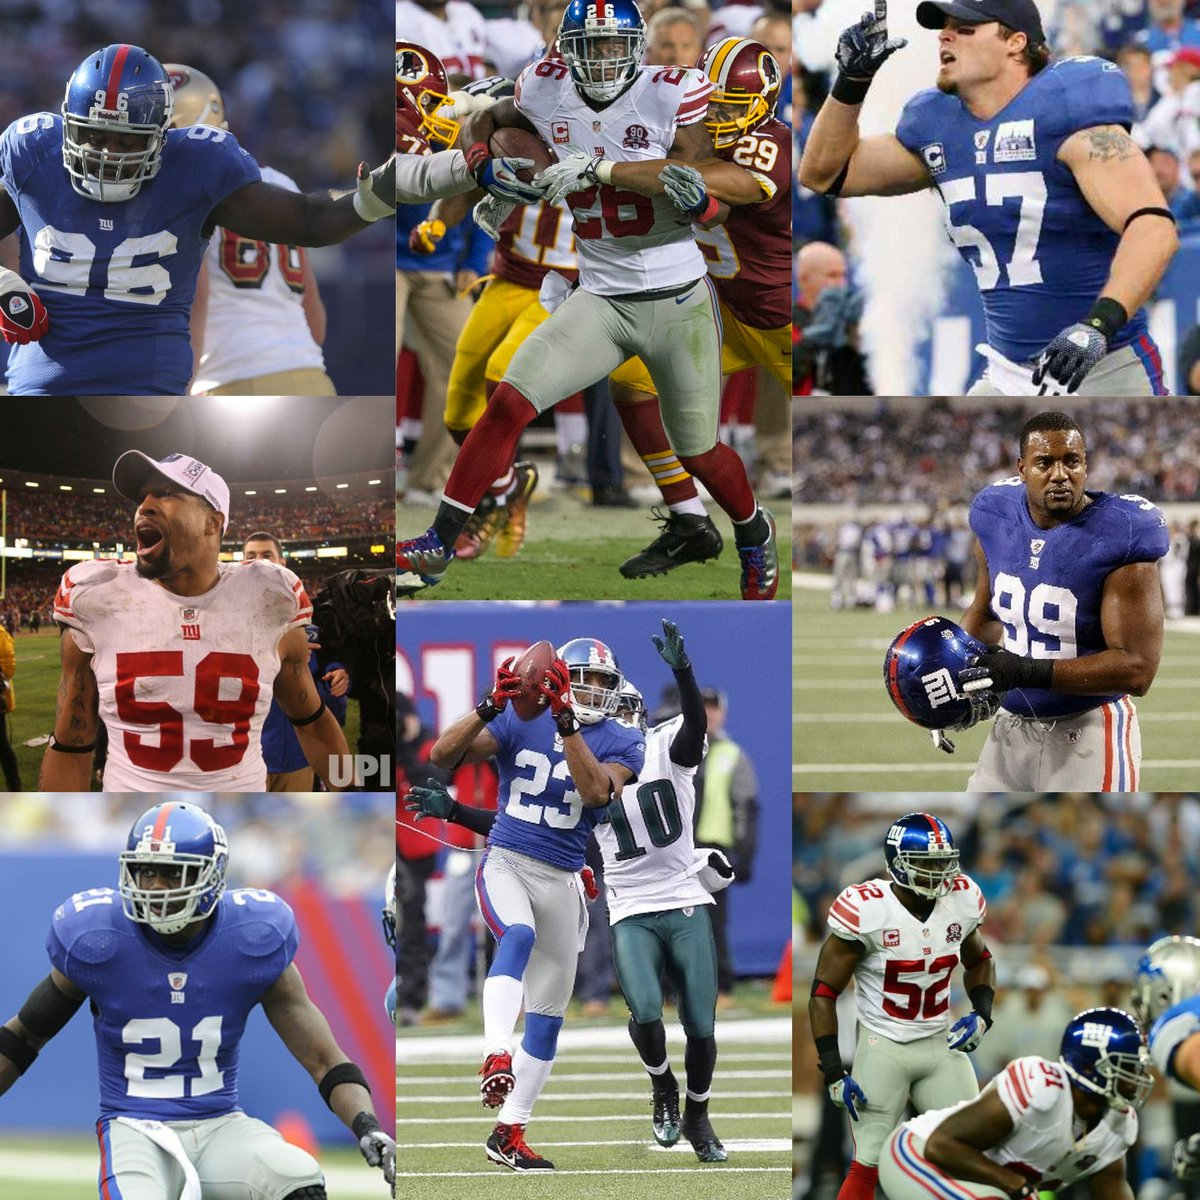 Just a die hard giants fan. Appreciating some of the talented players that have suited up for the NY Giants!! #giantspride<br>http://pic.twitter.com/FTBc2McTZN